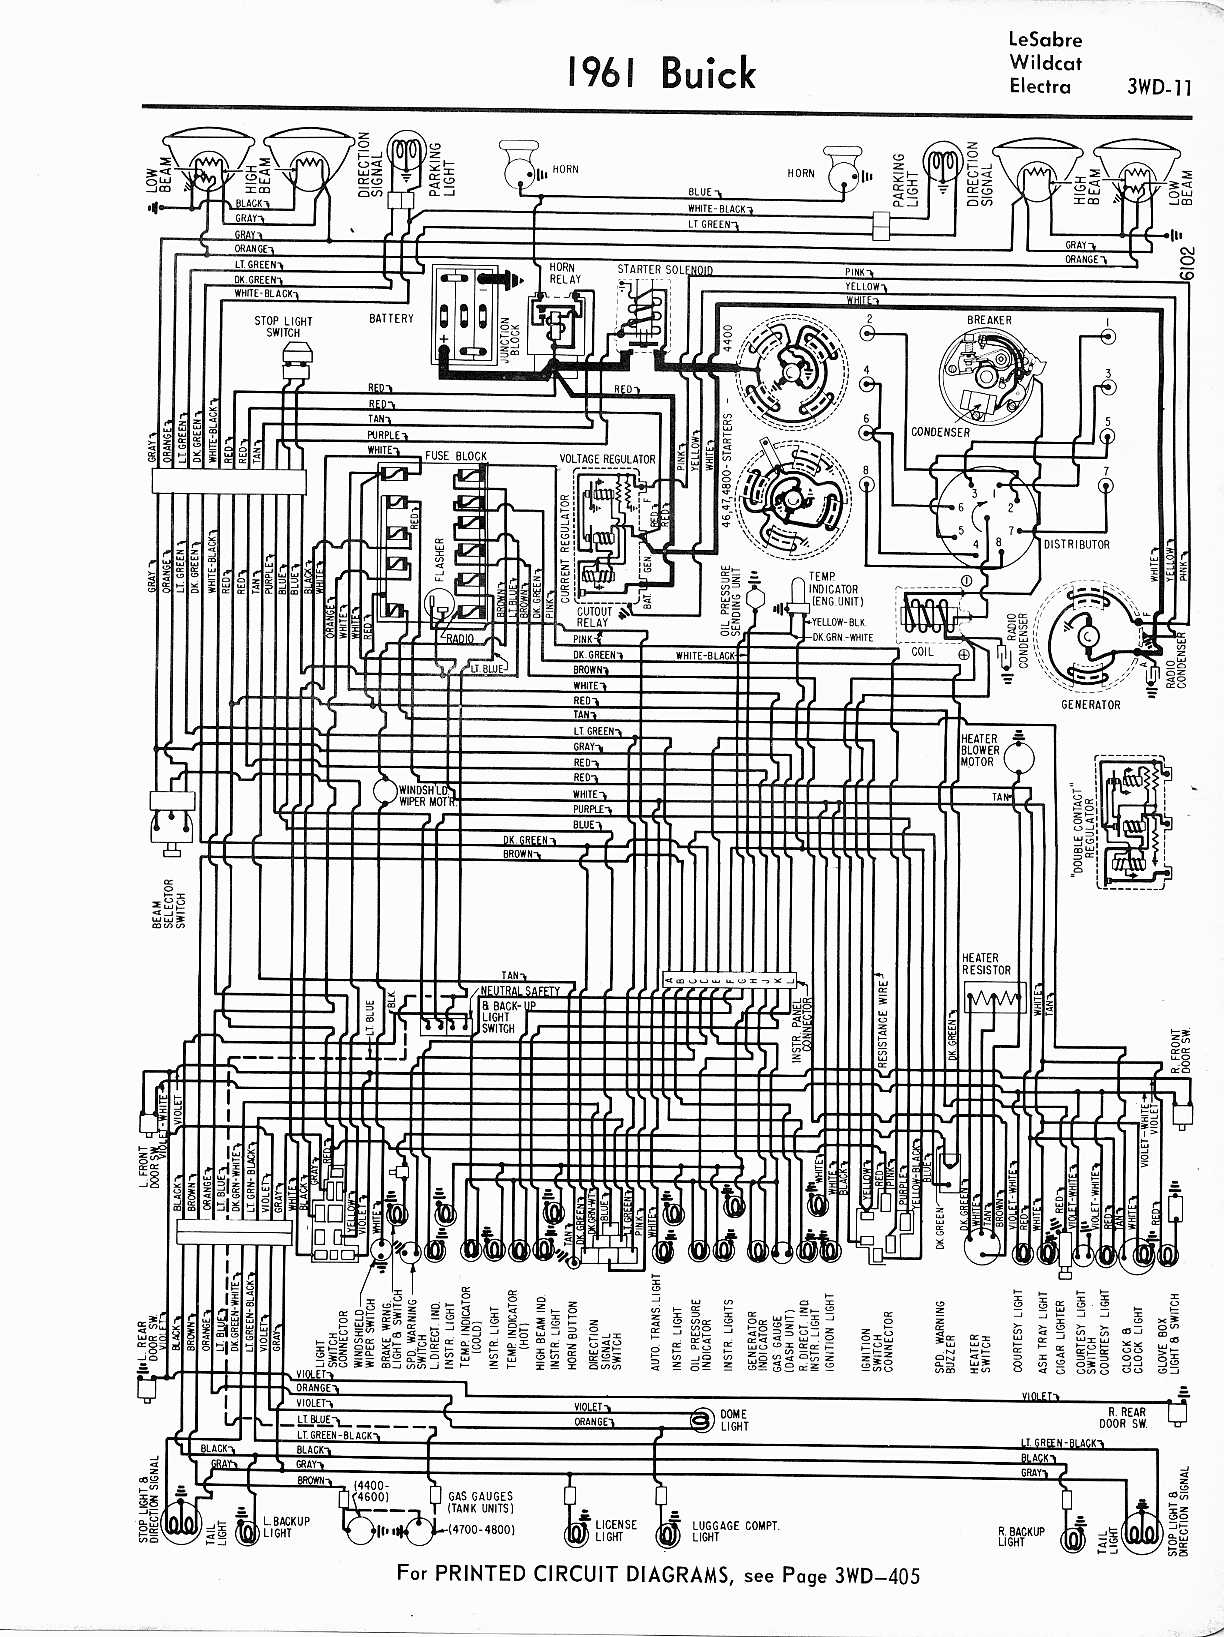 buick wiring diagrams 1957 1965 1953 buick engine wiring diagram 1961  lesabre, wildcat, electra